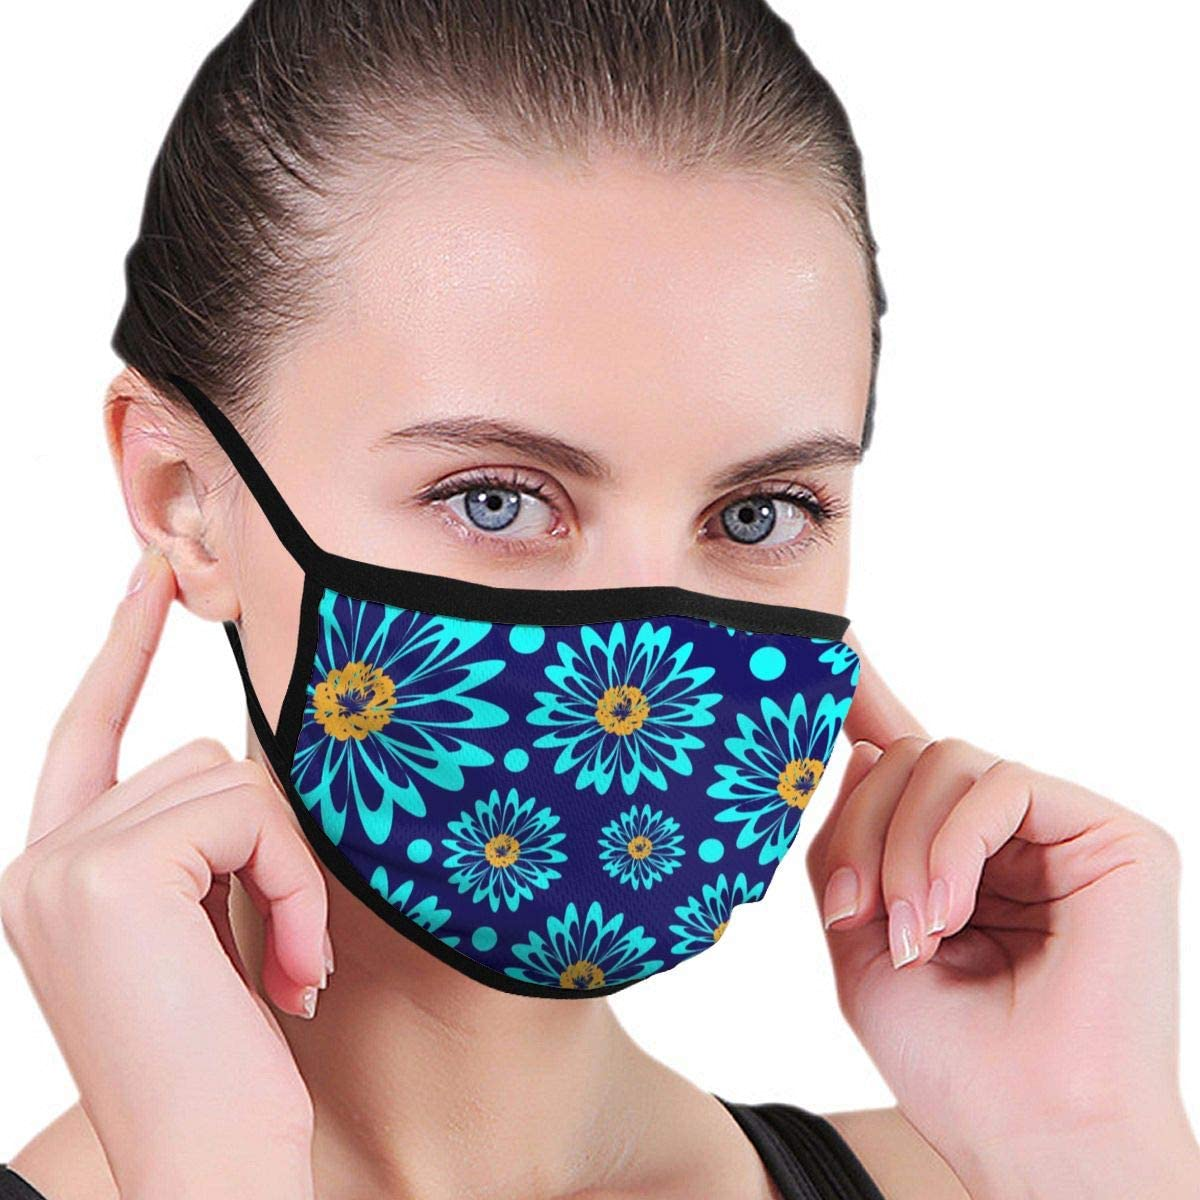 Ladion Bright Musical InstrumentsMen's Women's Print Warm Washable Reusable Ear Warmer Neck Warmer Construction Mouth Wear